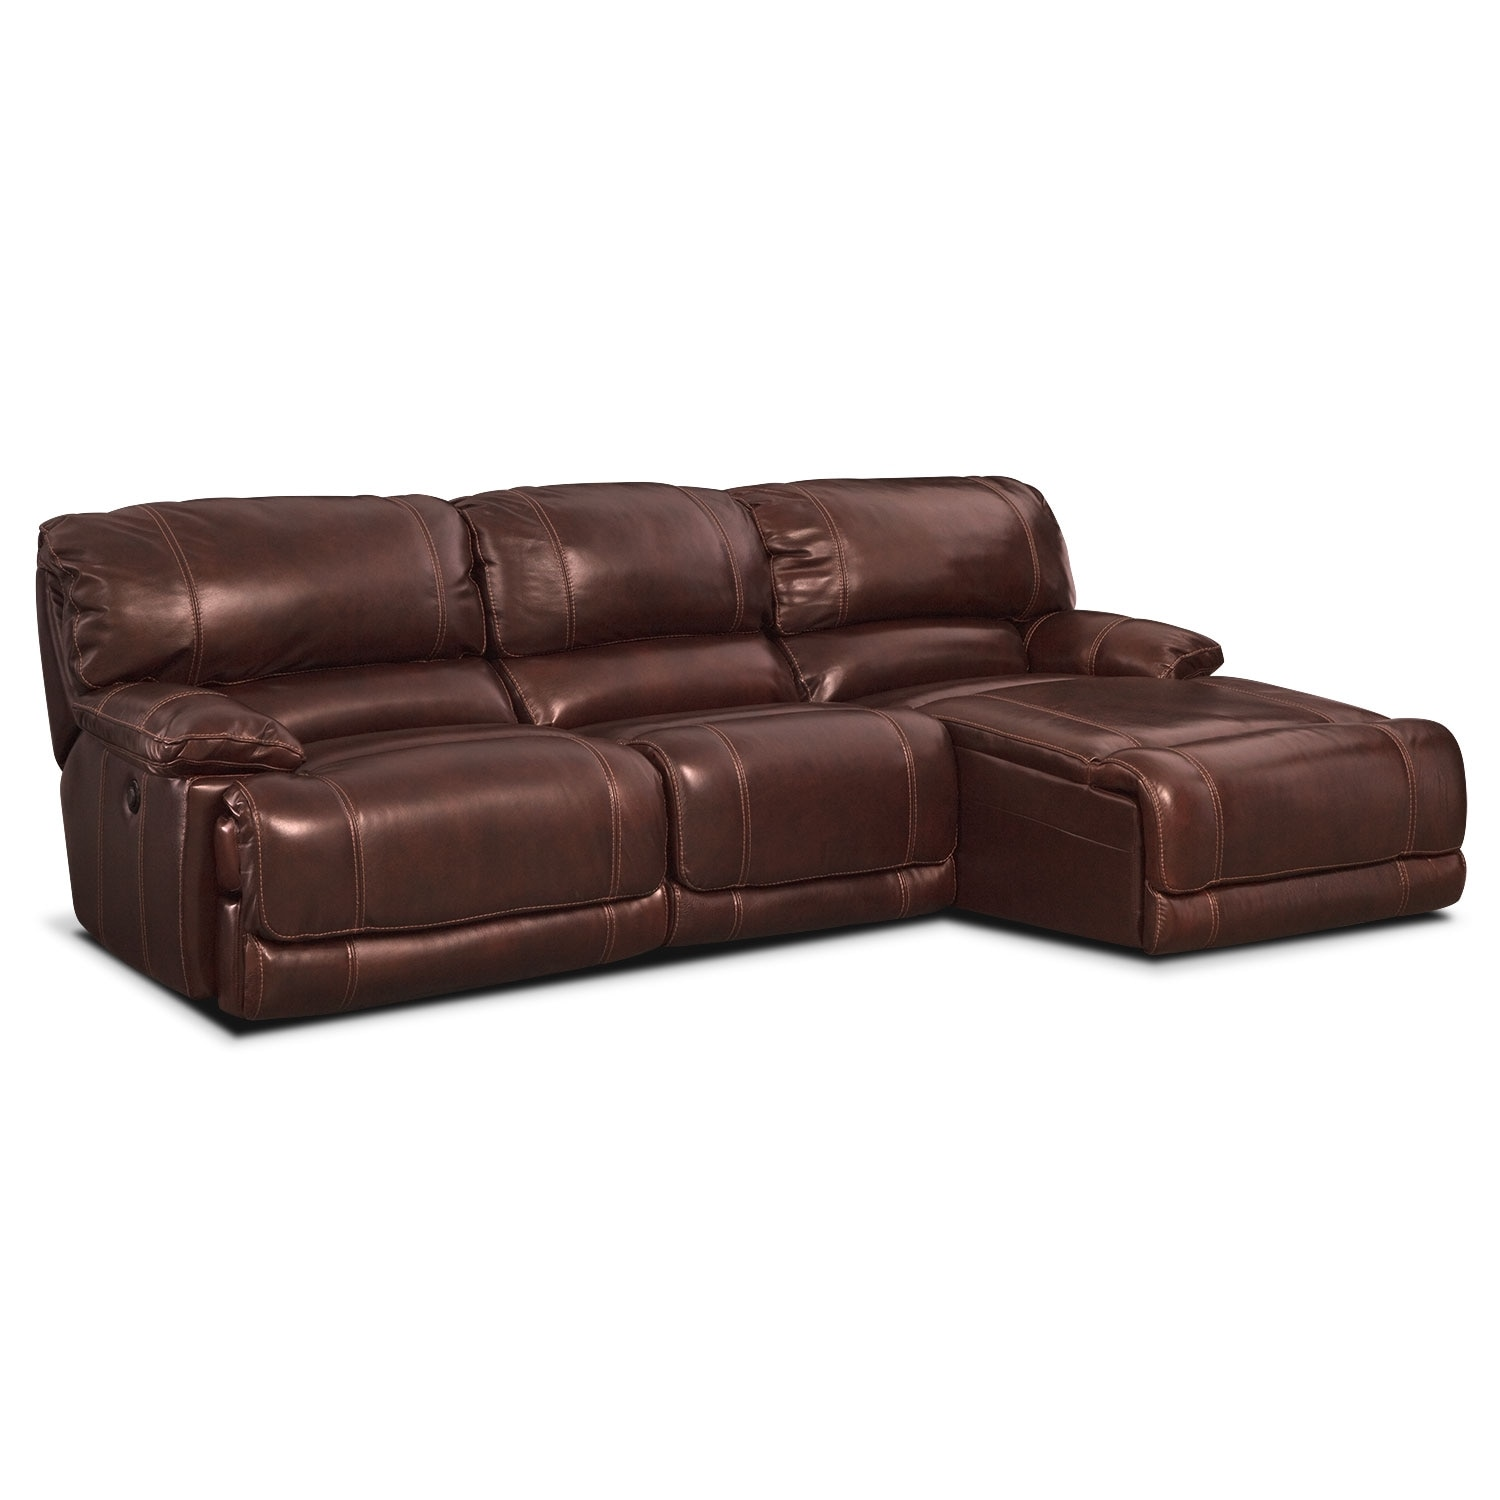 St malo iii 3 pc power reclining sectional value city for 3pc sectional with chaise